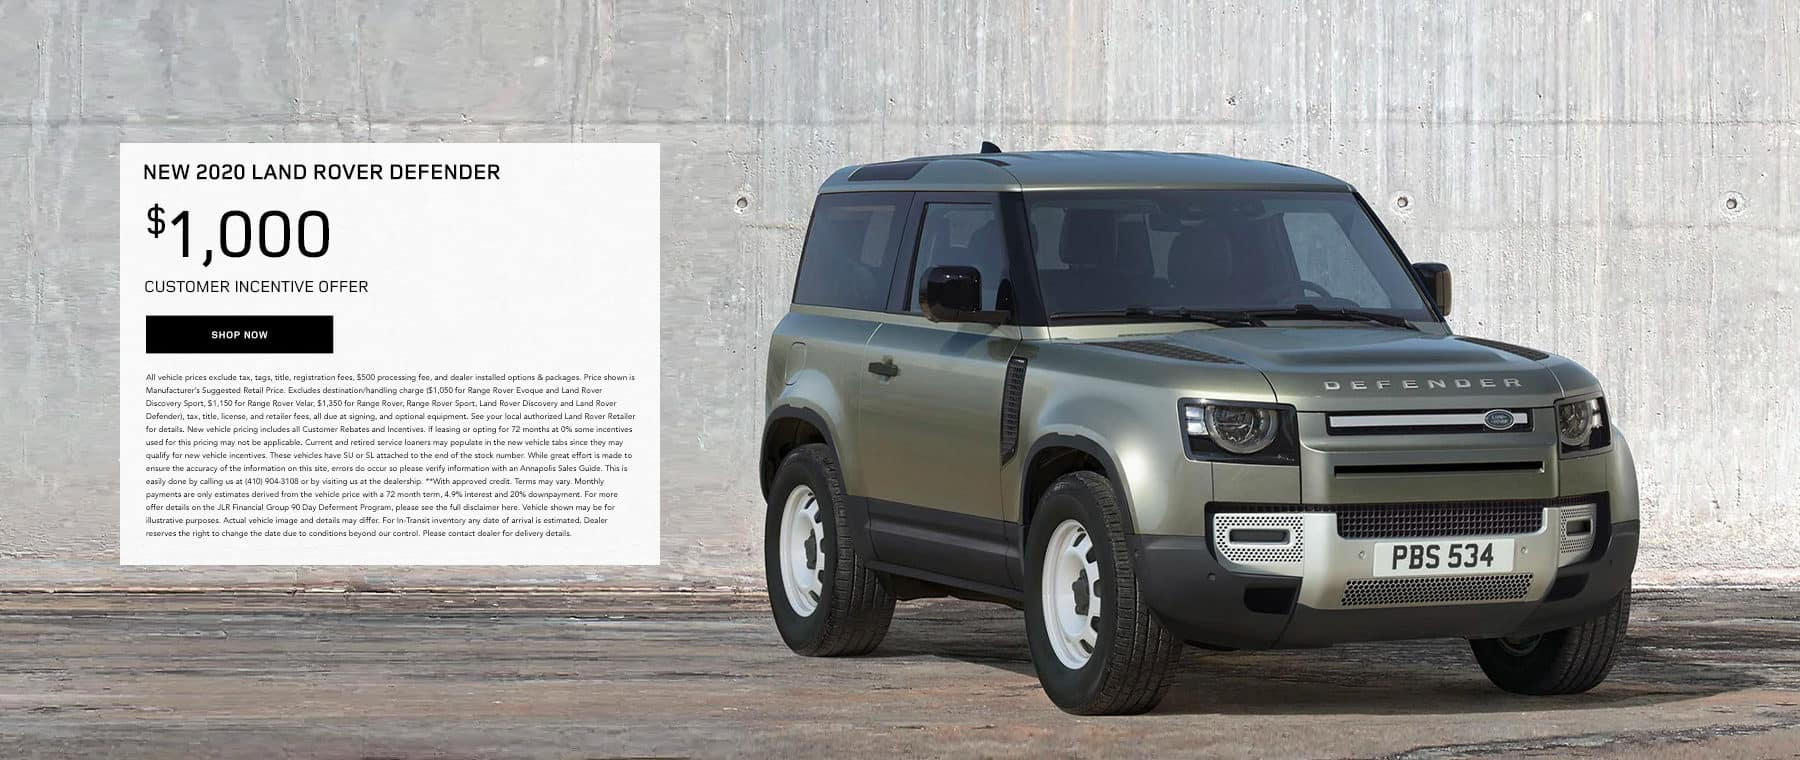 2020 Land Rover Defenders.